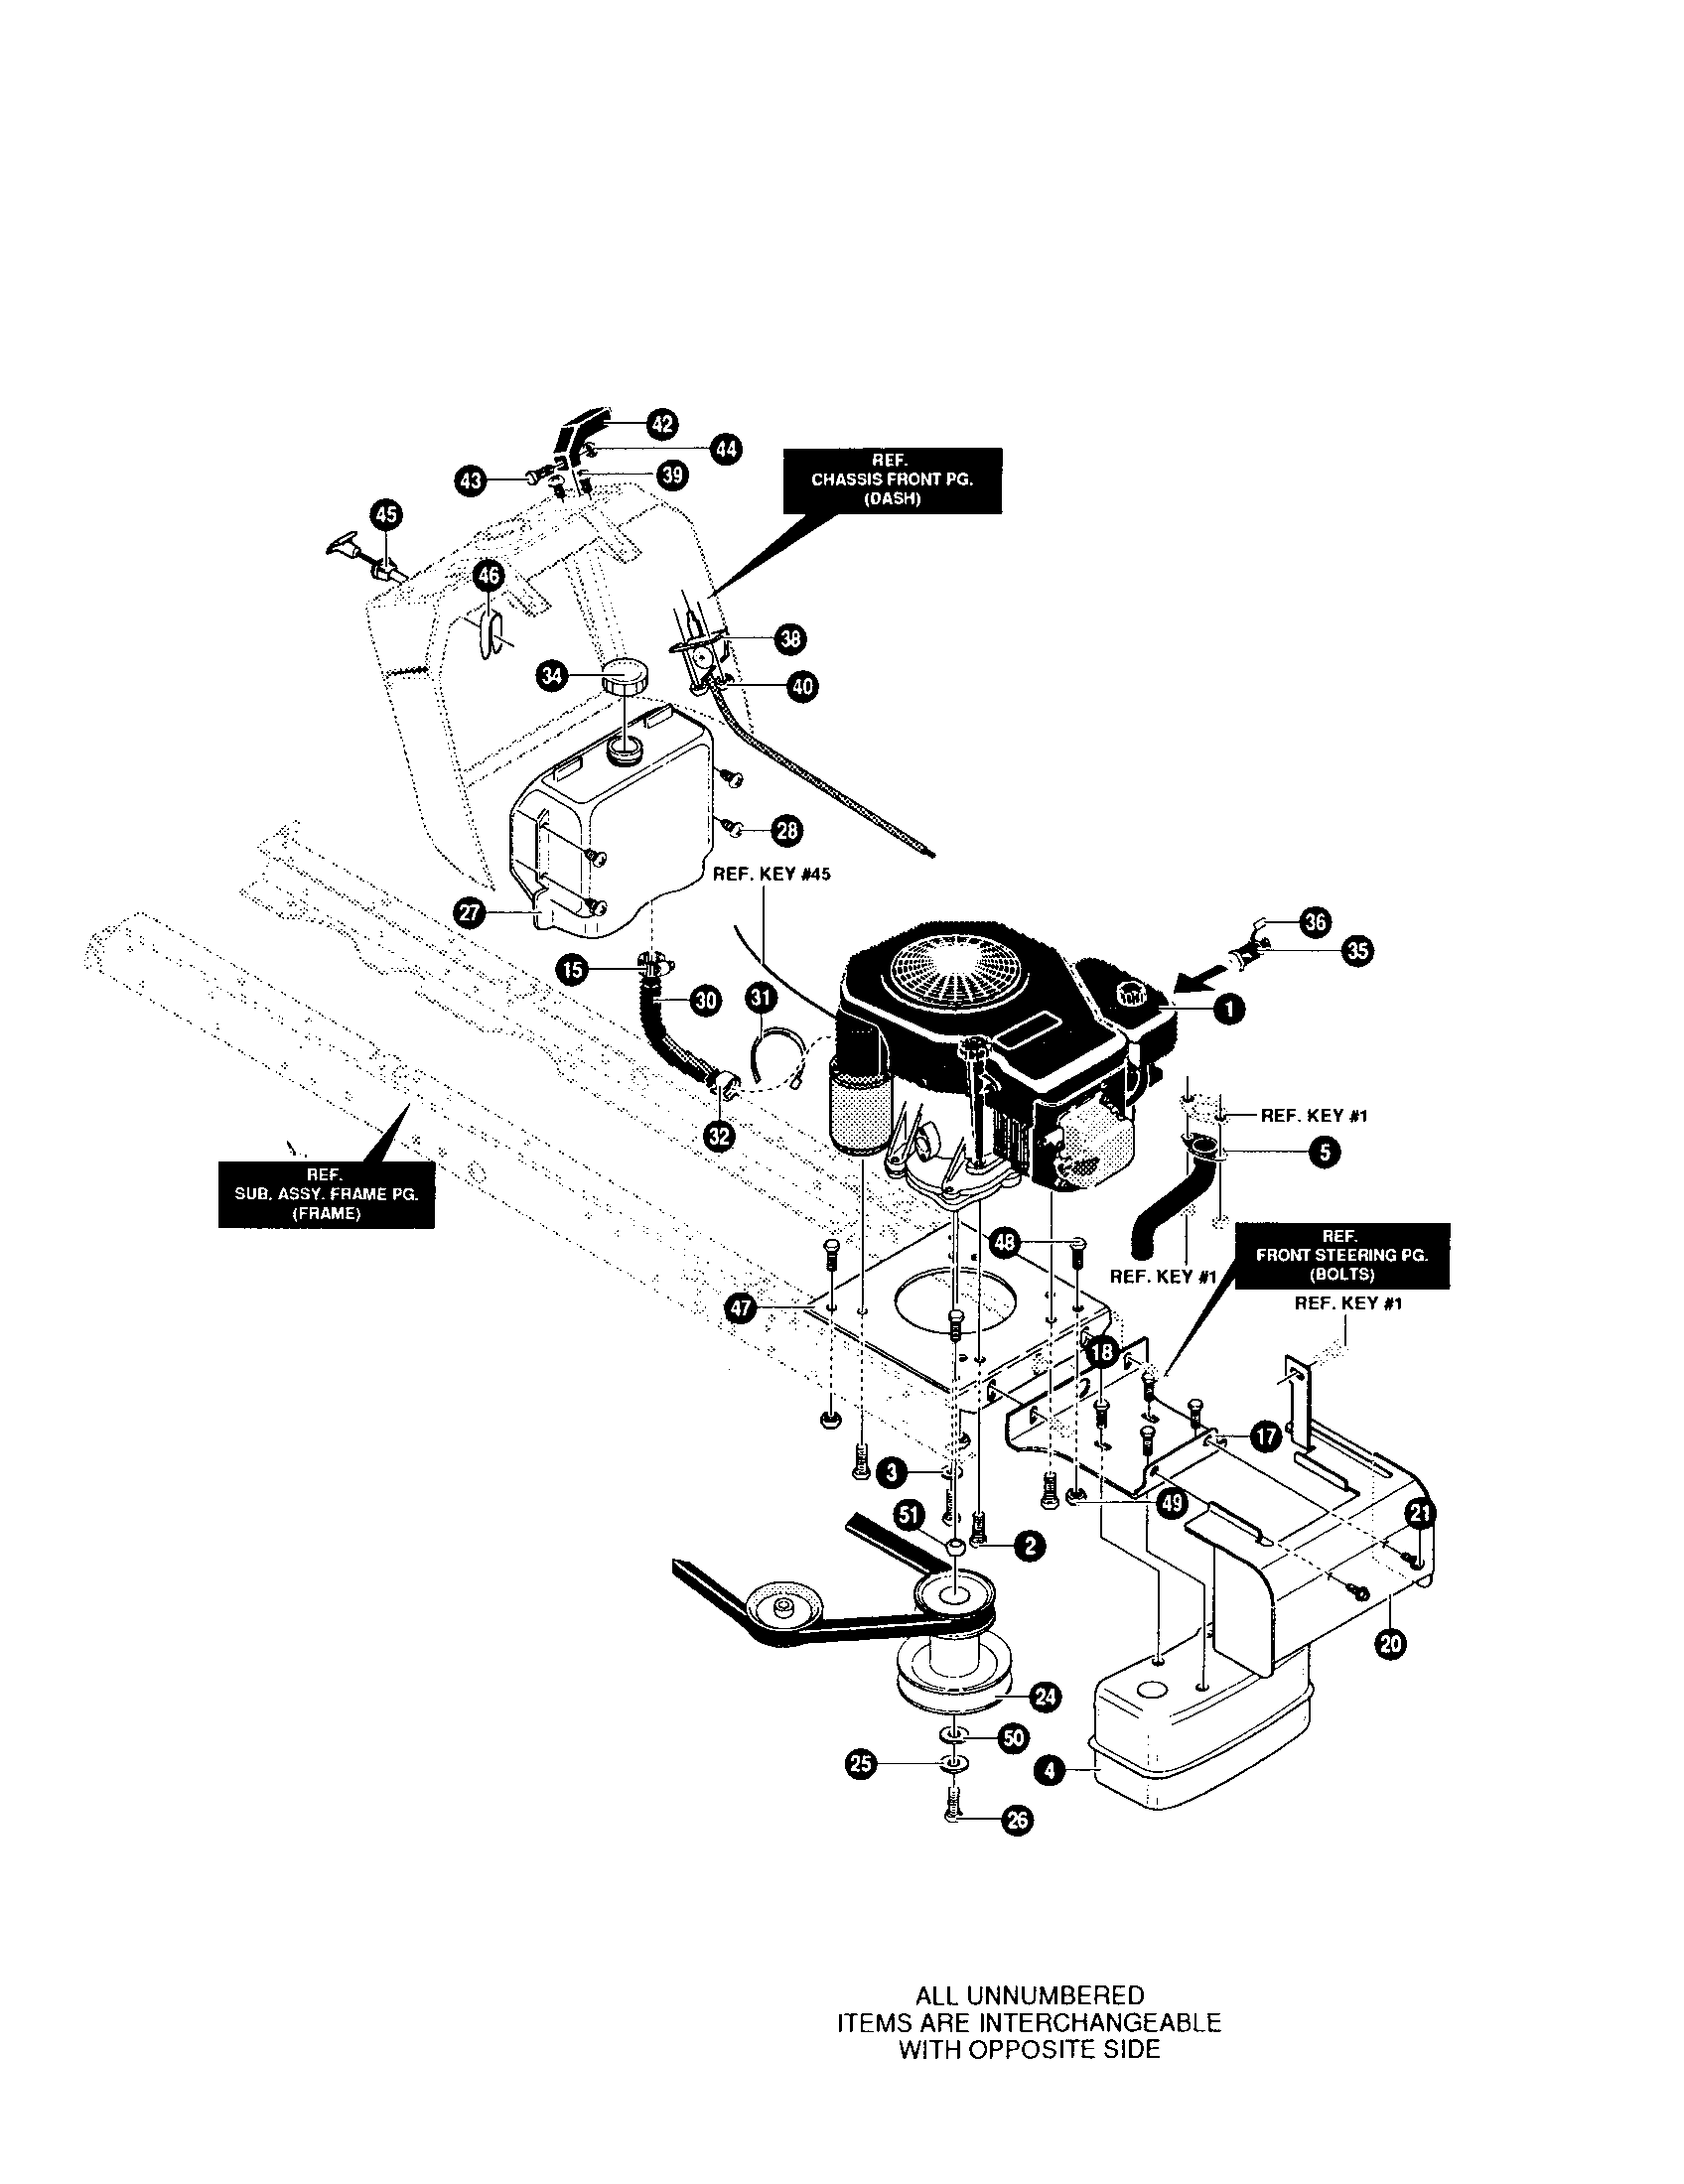 KOHLER ENGINE Diagram & Parts List for Model 42566x89 Yard